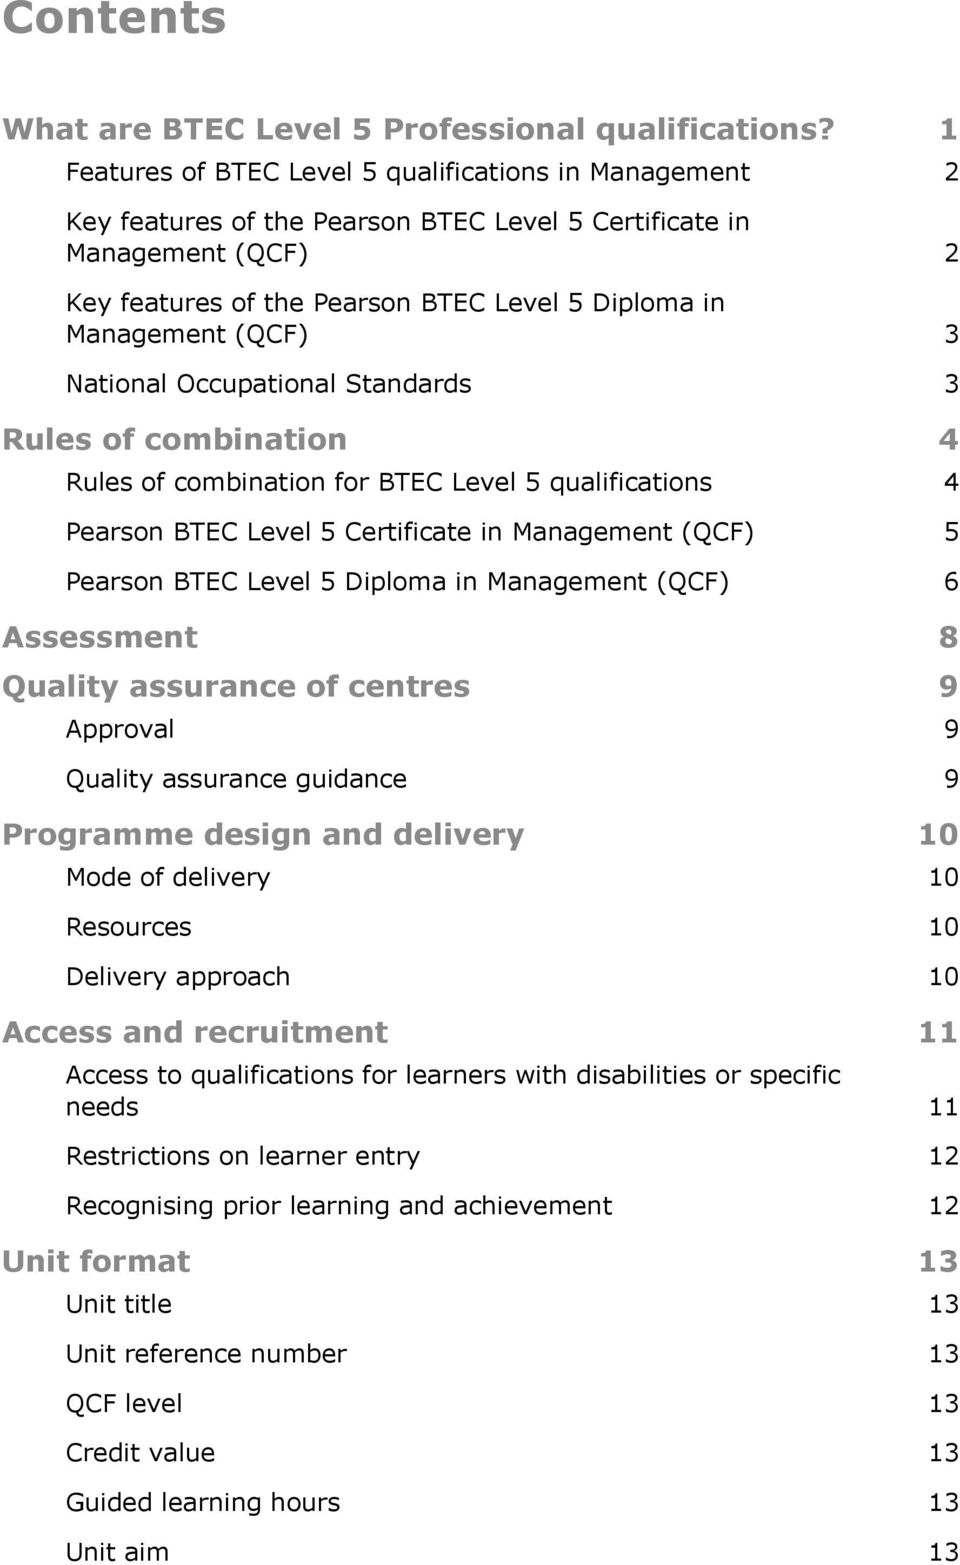 pearson btec level 5 certificate in management qcf pearson btec qcf 3 national occupational standards 3 rules of combination 4 rules of combination for